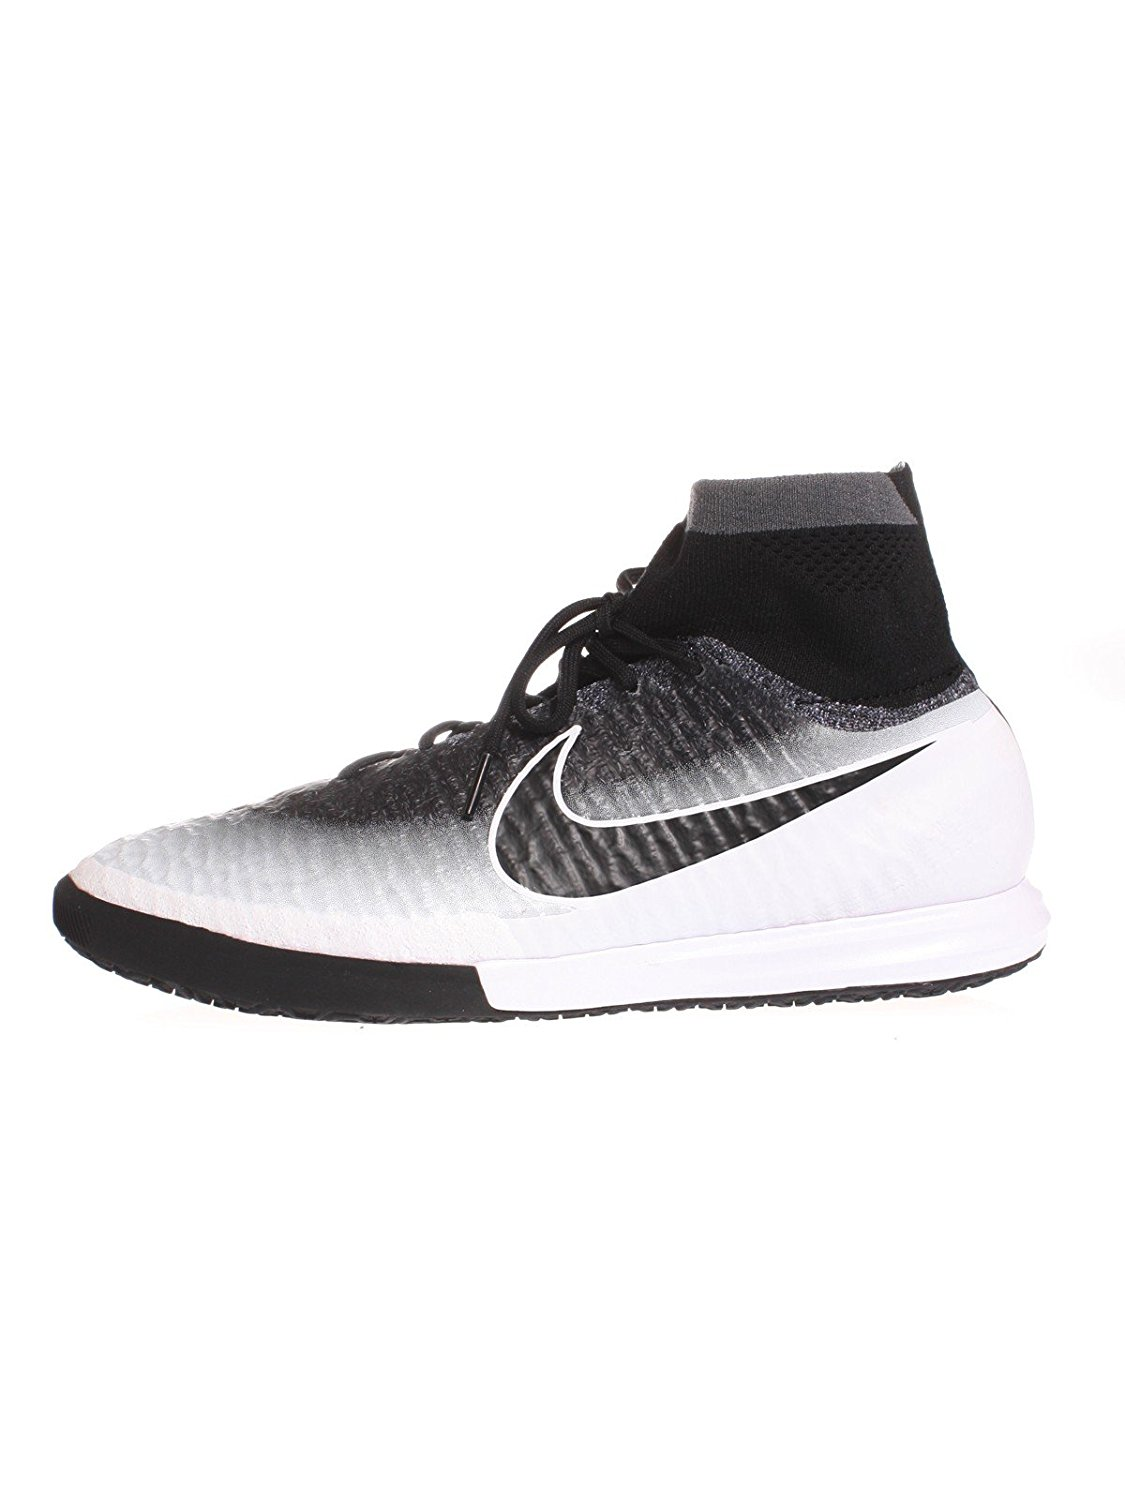 Get Quotations · Nike Mens Magistax Proximo Indoor Soccer Shoes e2fd5ddd6